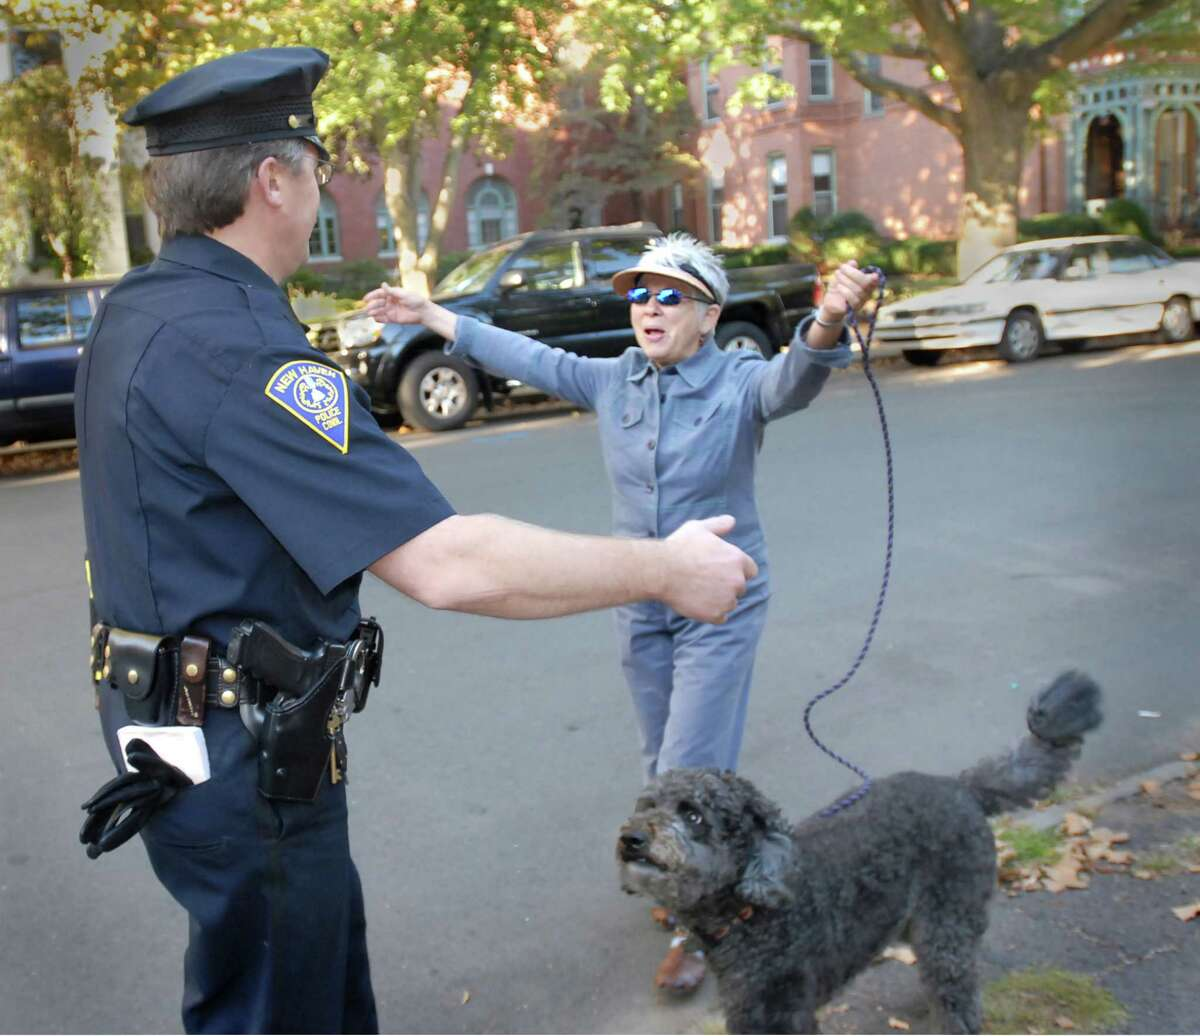 (MS092107)-Jane Lederer, who lives in the Wooster Square neighborhood, welcomes New Haven police officer, Peter Krause, back to his beat. With Lederer is her poodle, Rosy. Melanie Stengel/Register